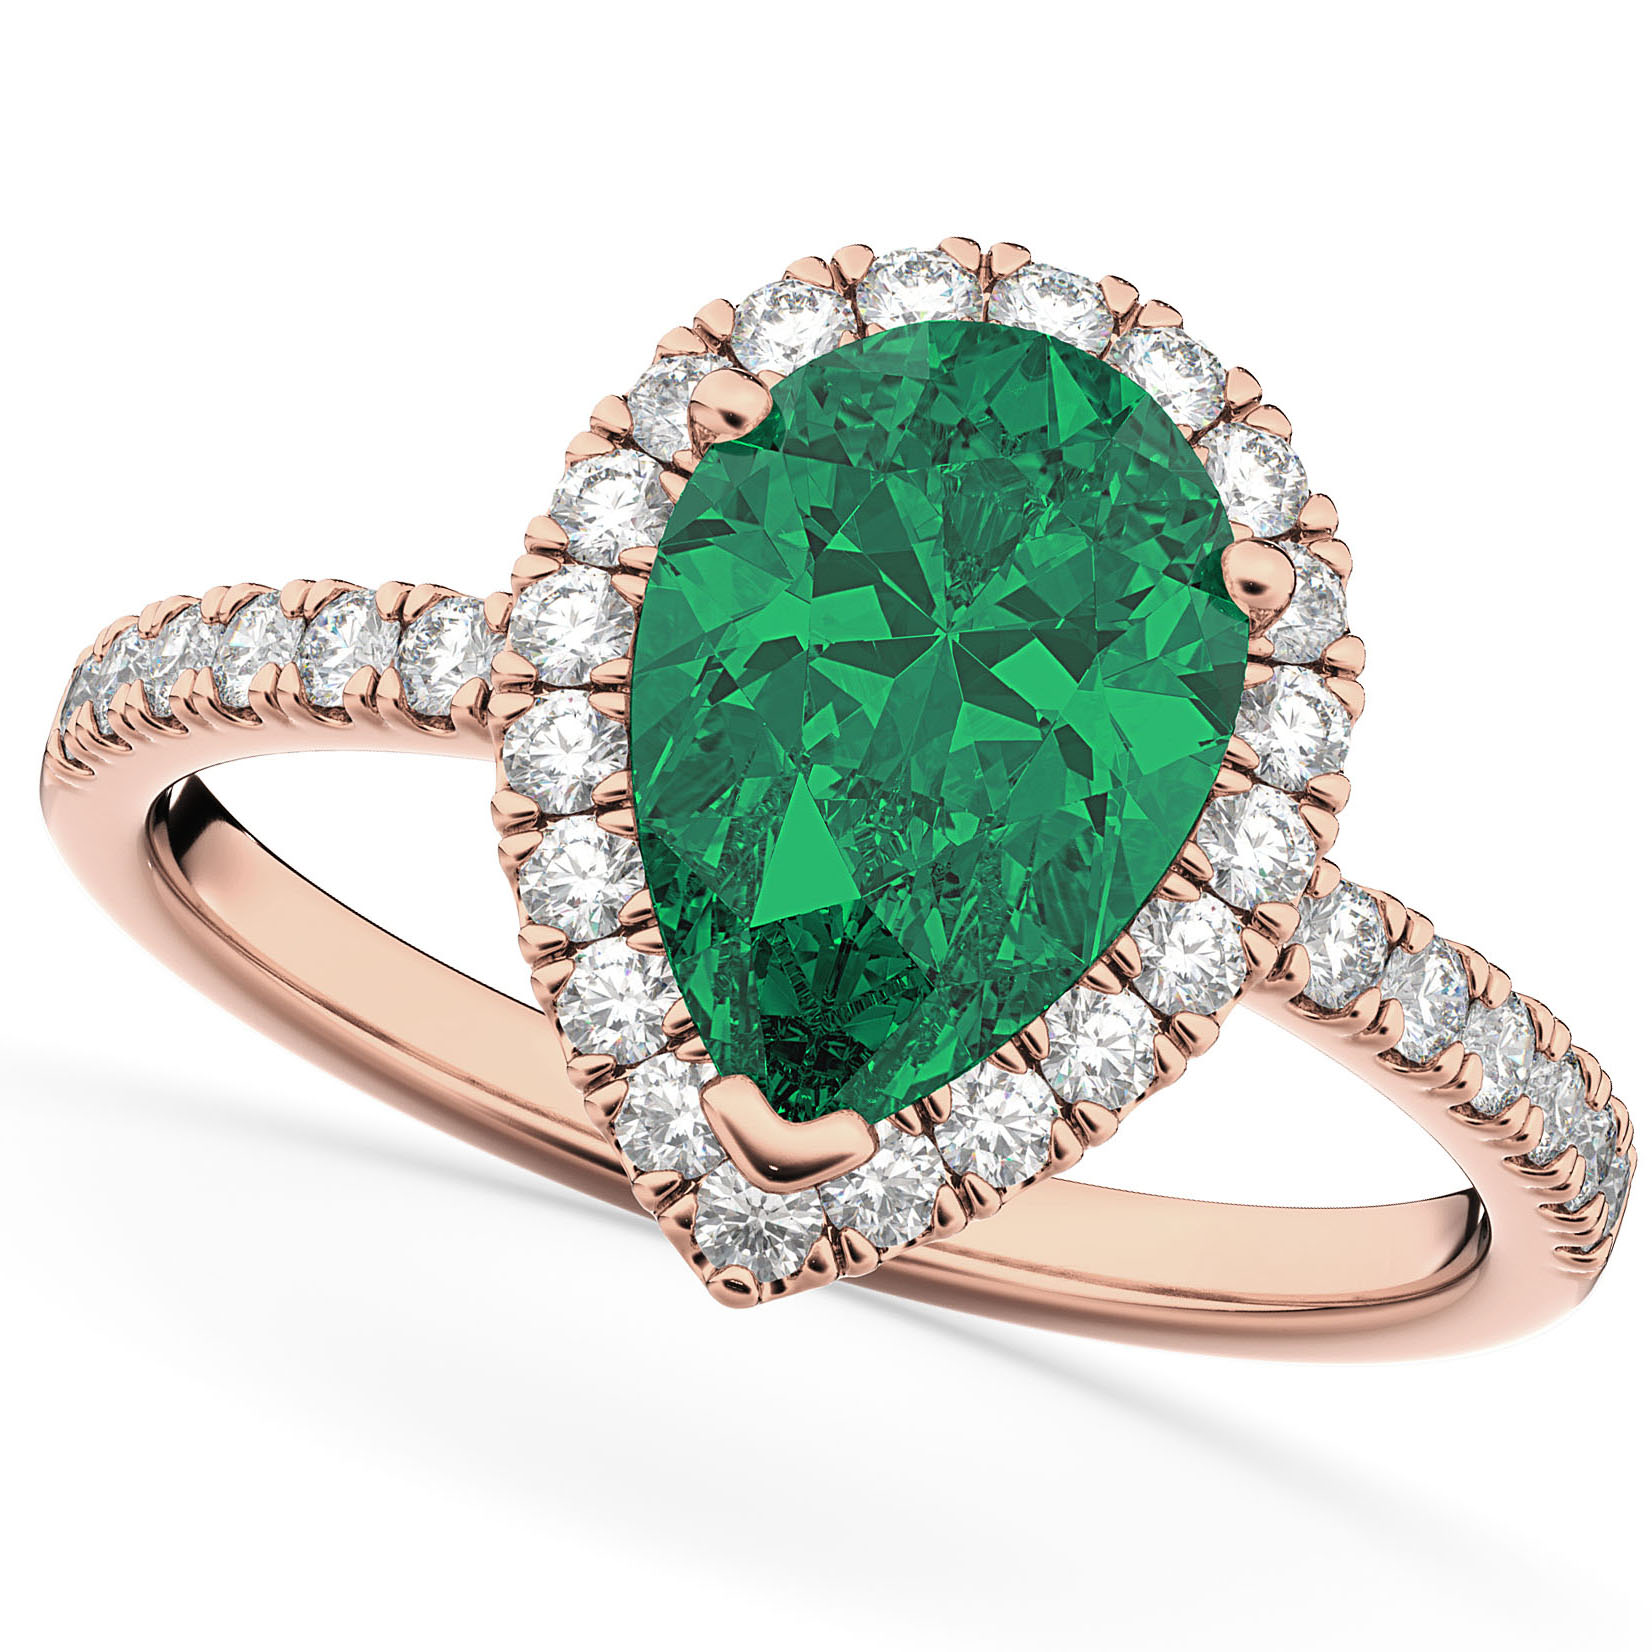 Pear Cut Halo Emerald & Diamond Engagement Ring 14K Rose Gold 3.21ct